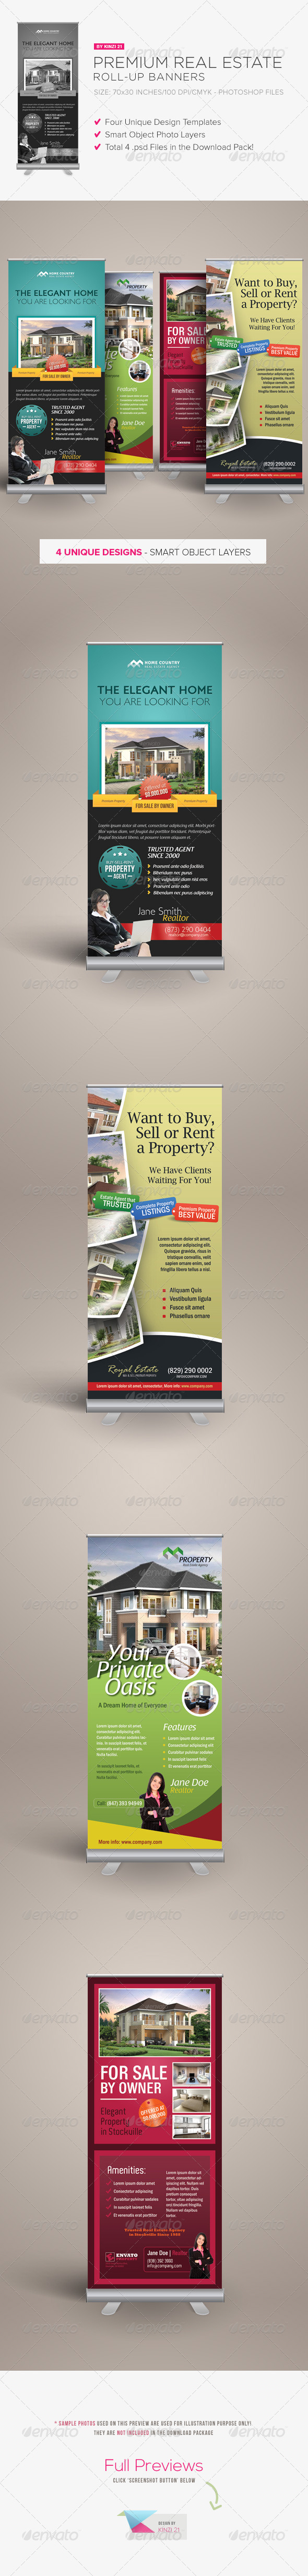 Premium Real Estate Roll-up Banners - Signage Print Templates